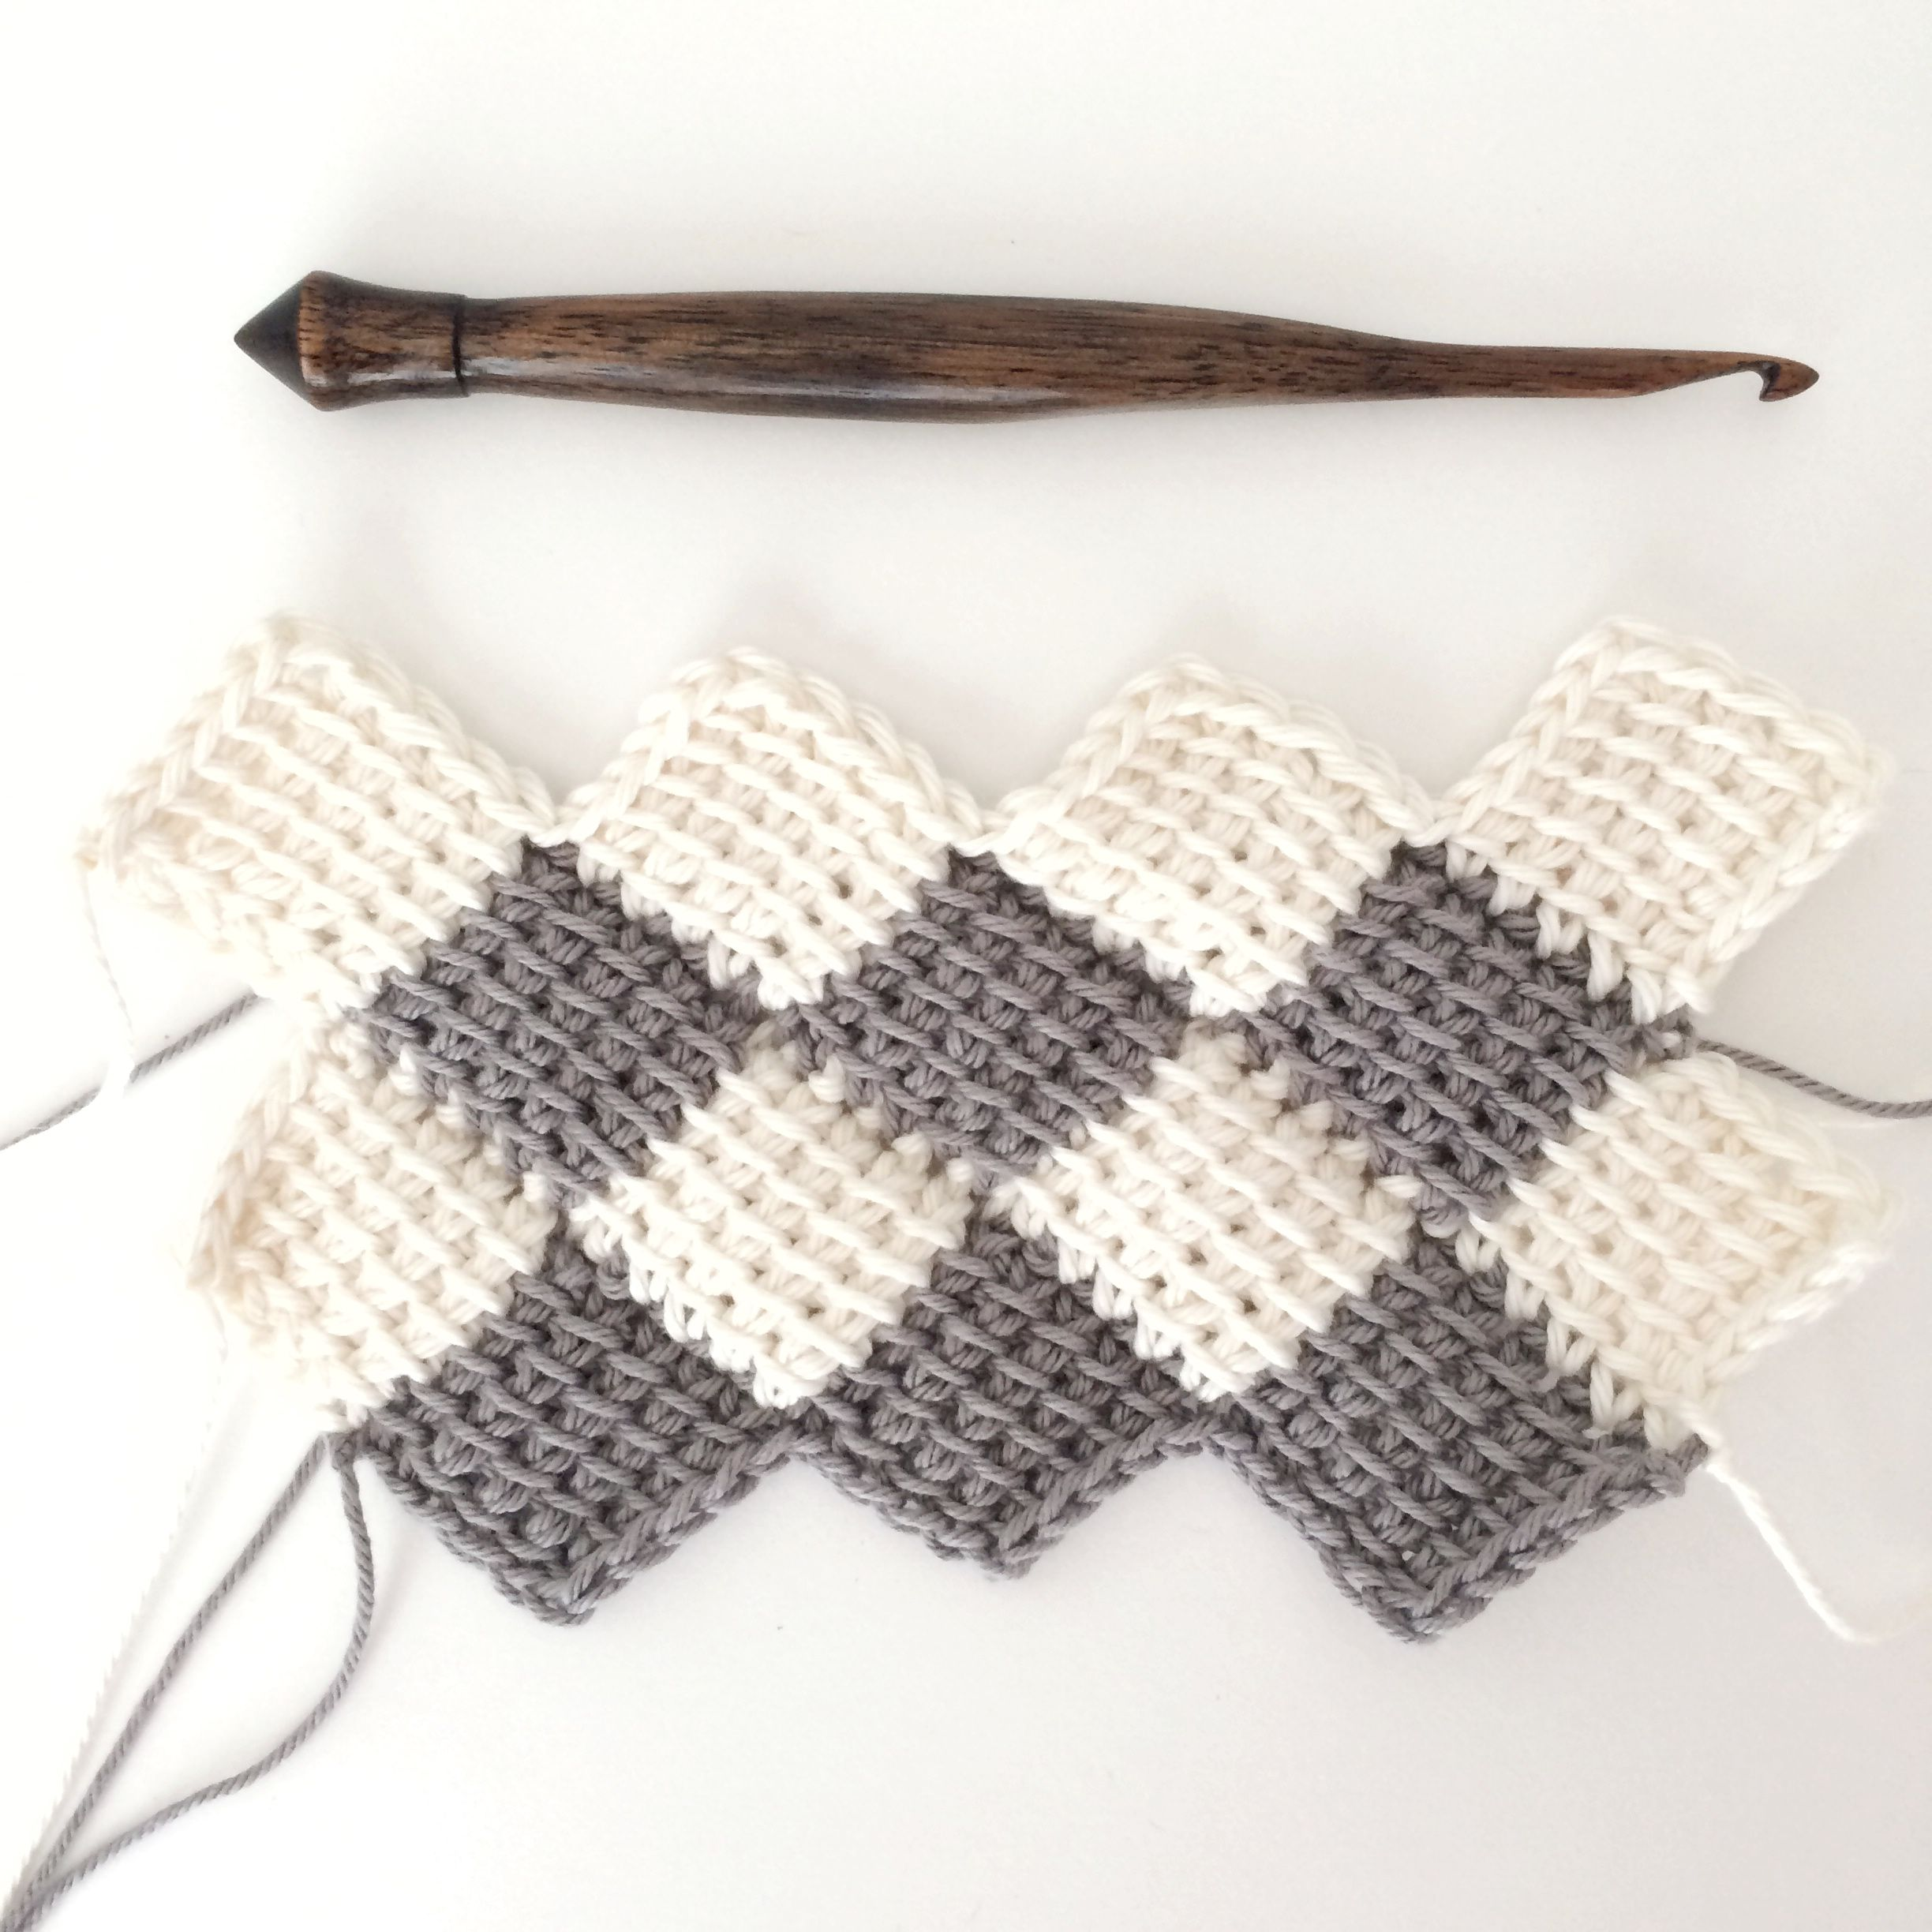 How to Use the Tunisian Entrelac Crochet Method | Gorros y Ganchillo